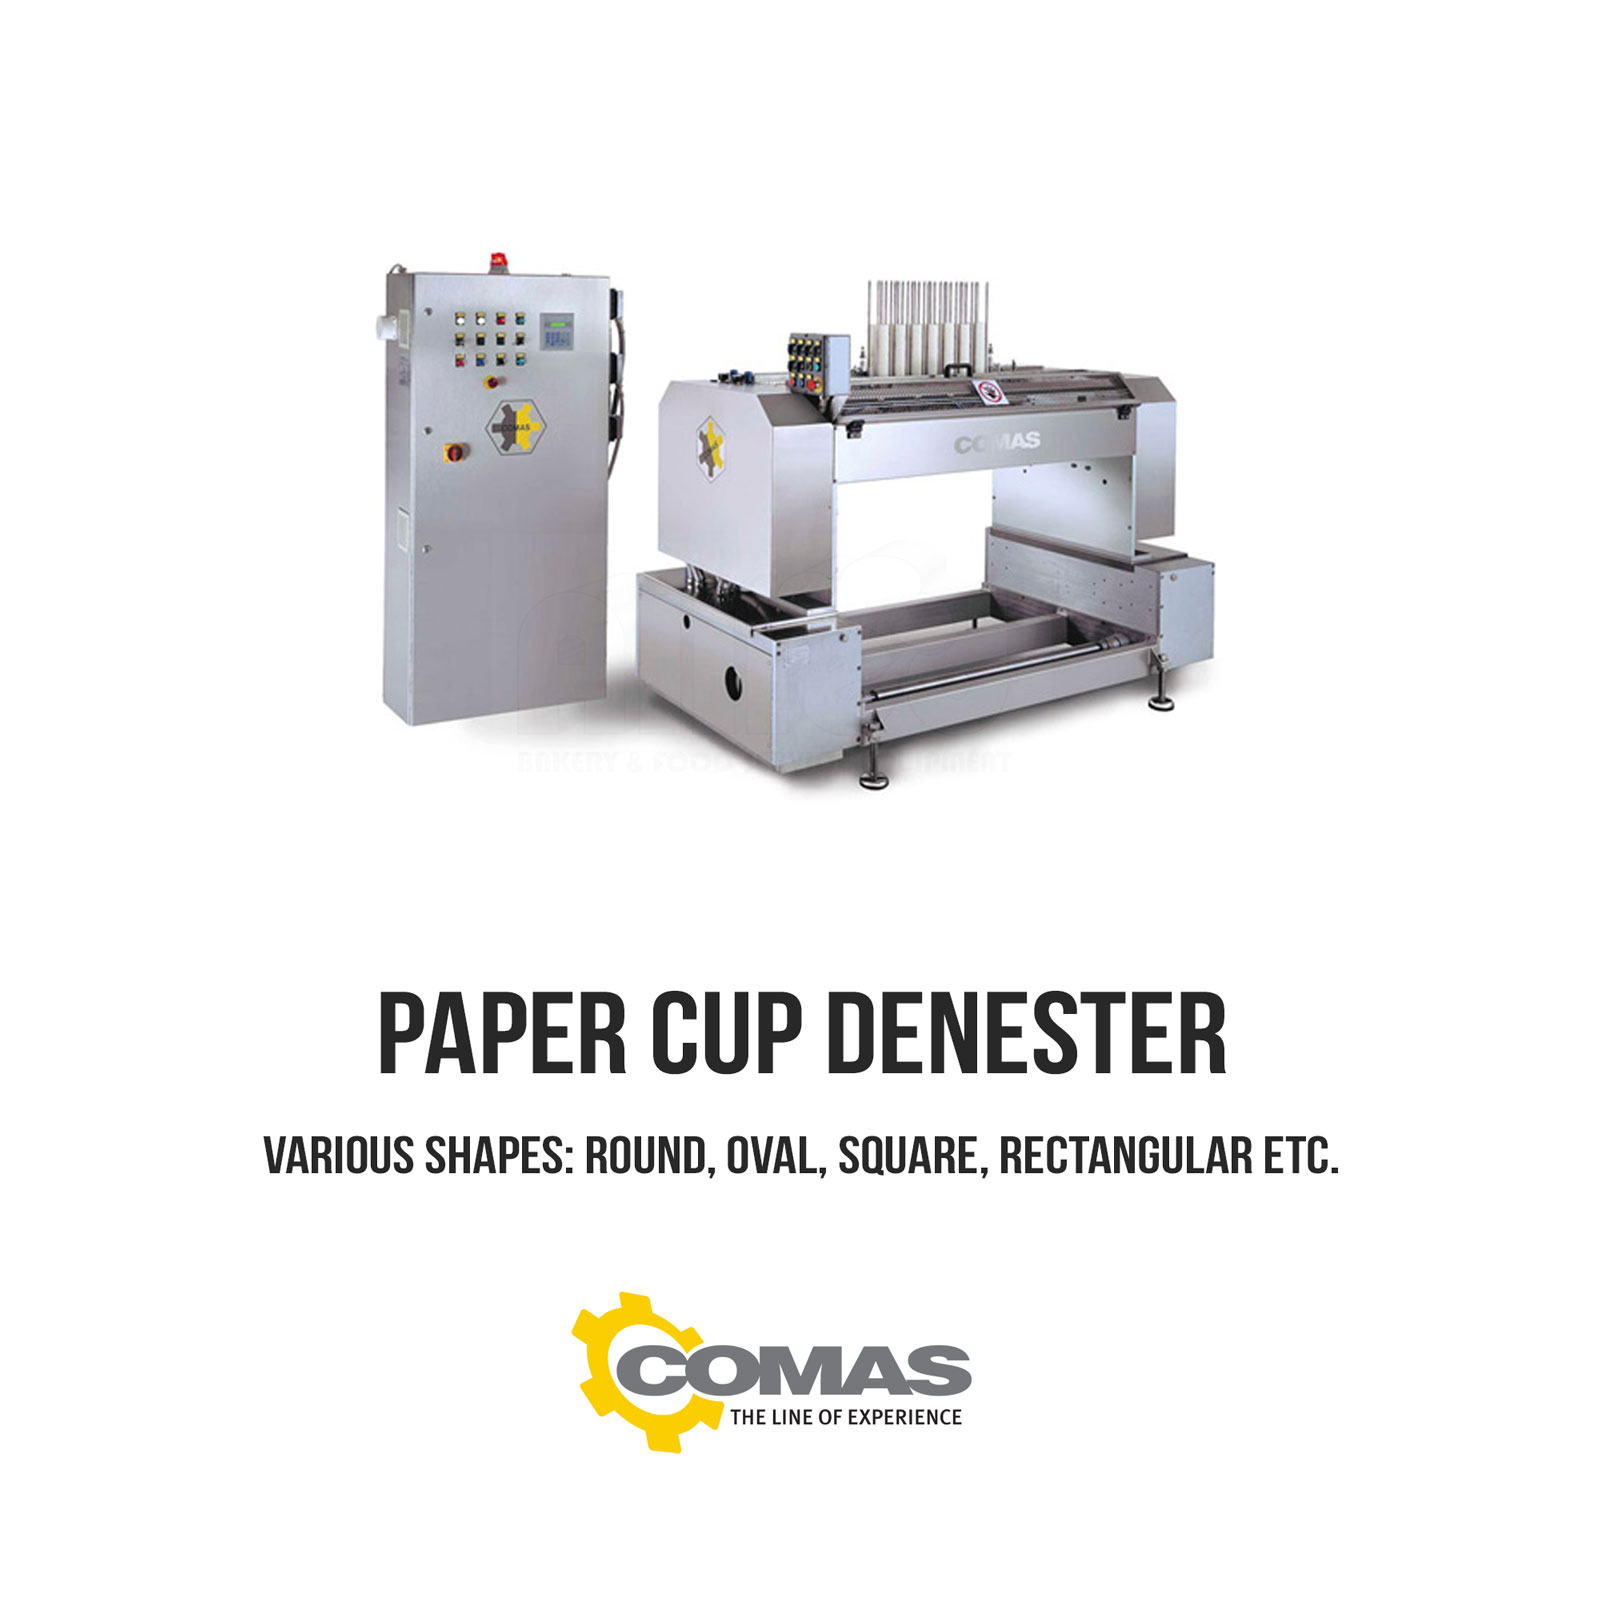 Comas – Paper Cup Denester – Allied Bakery Equipment